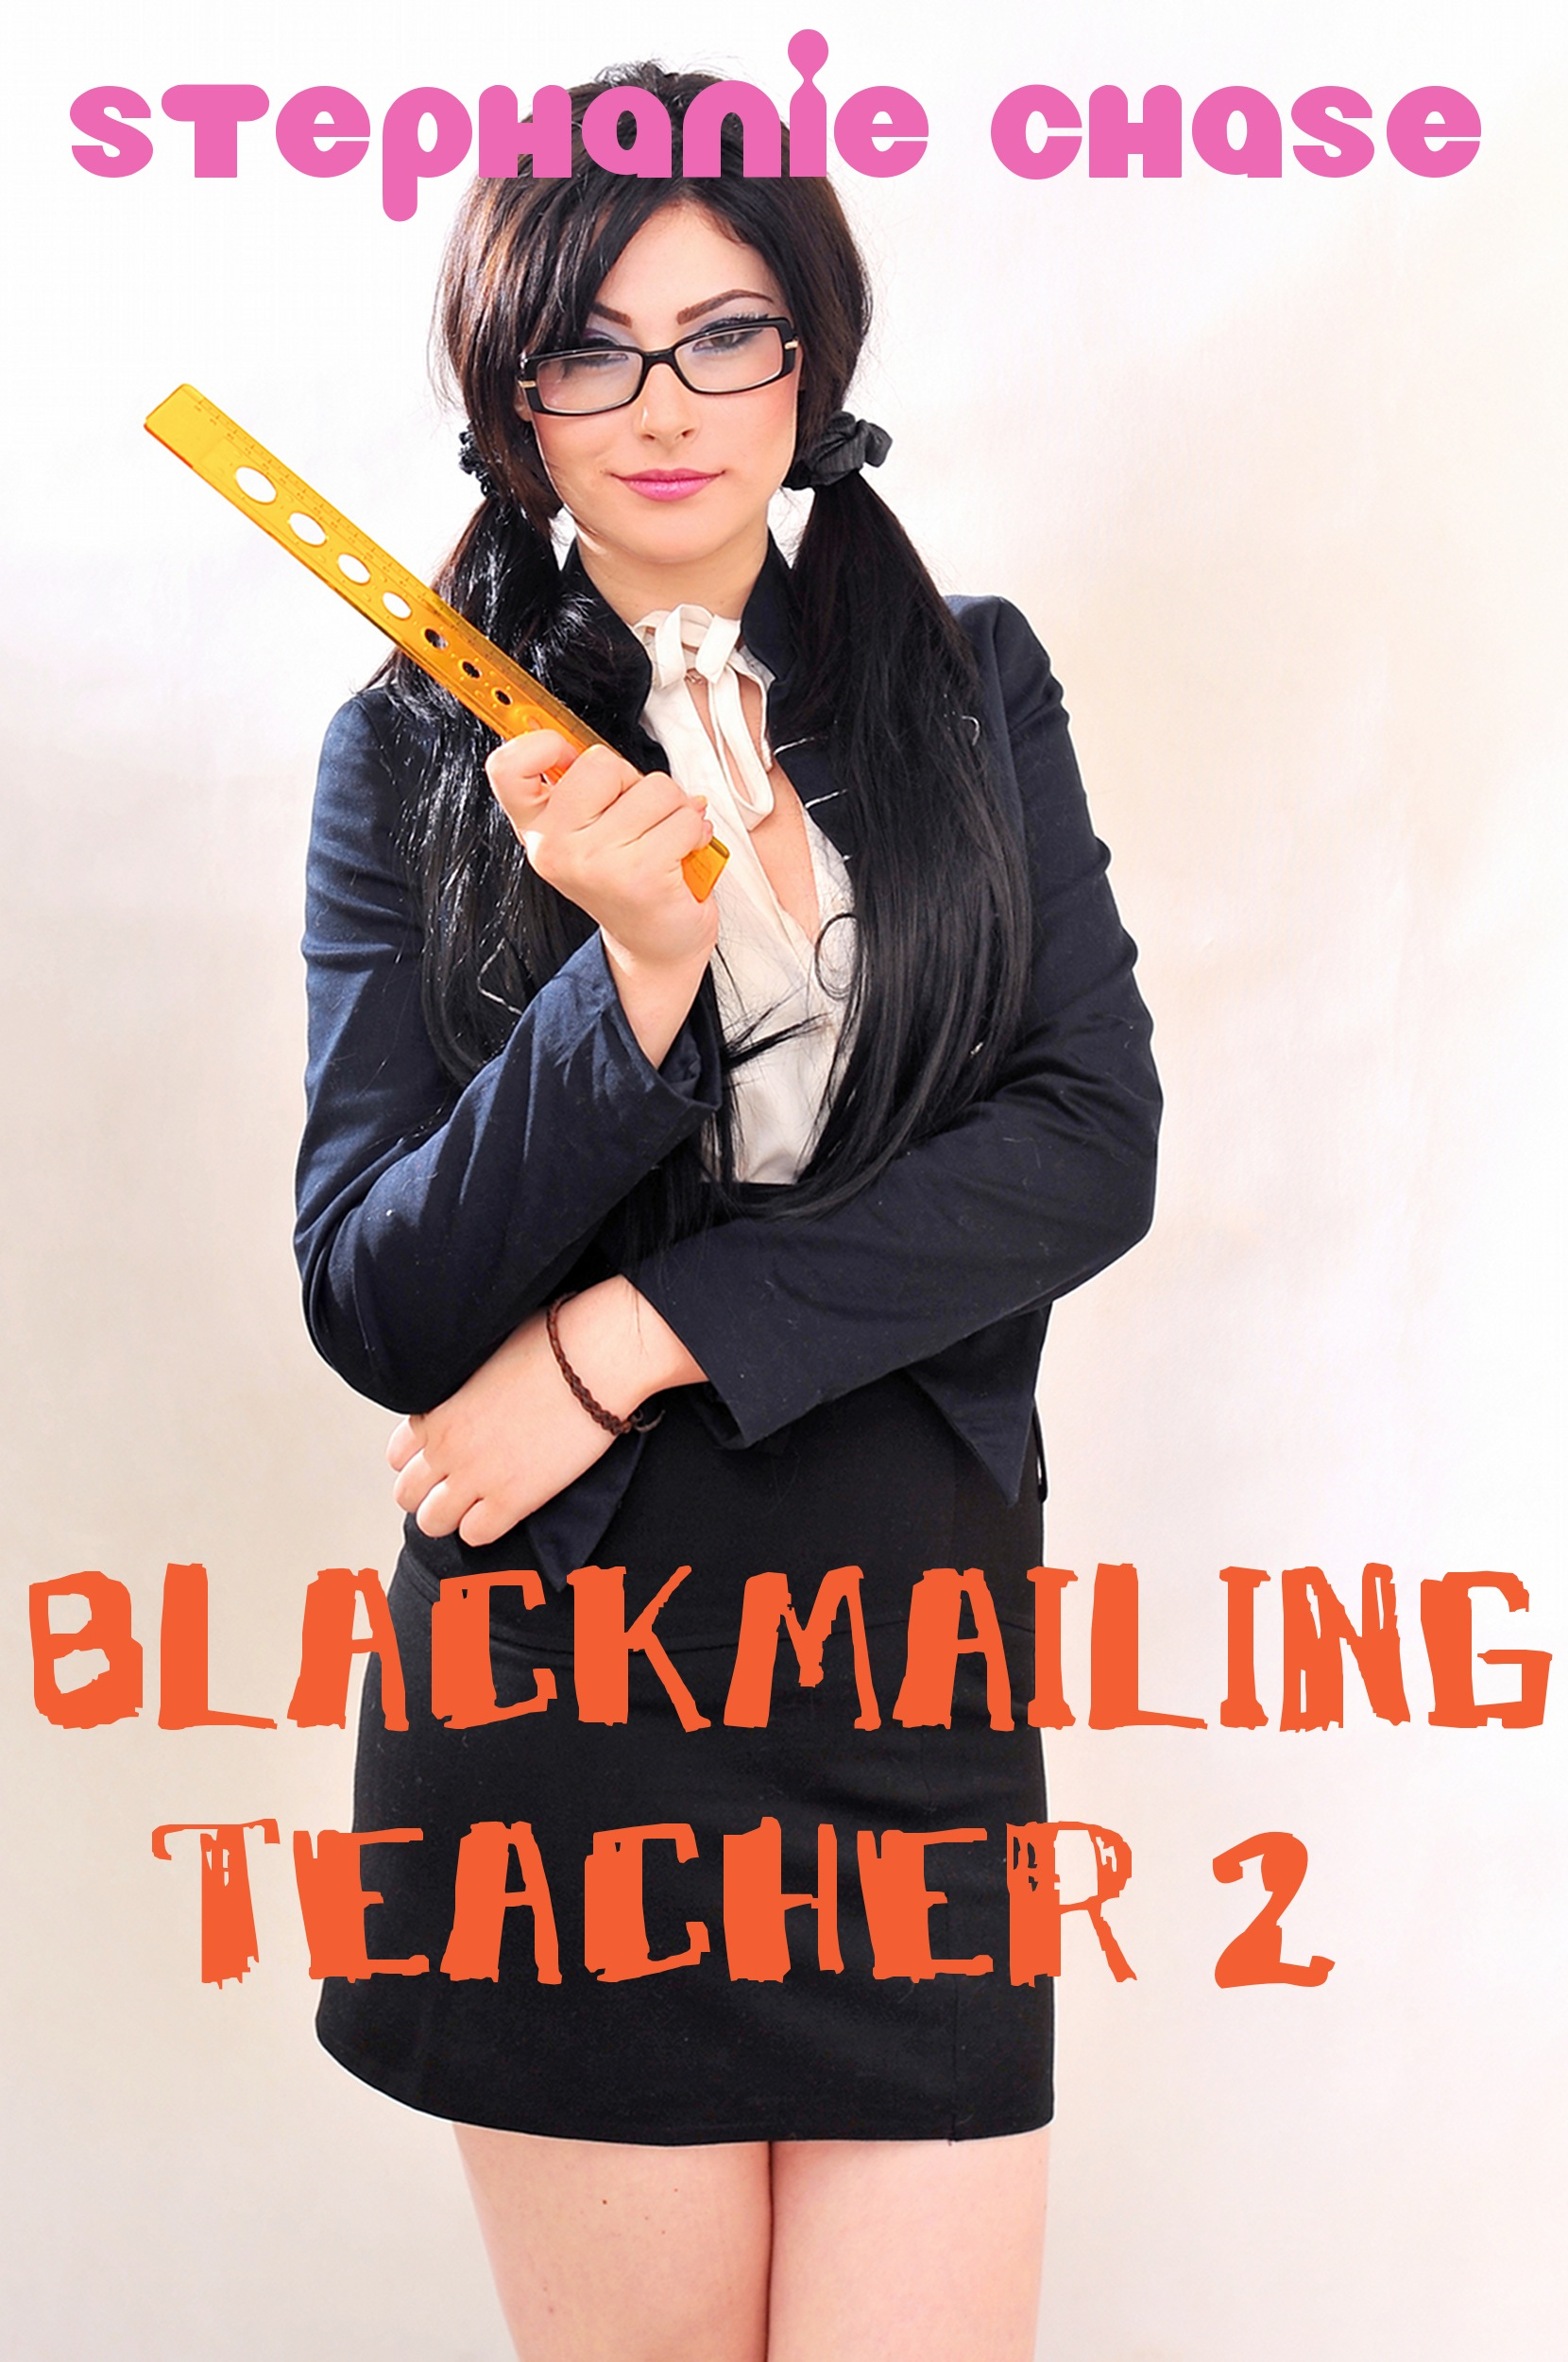 Blackmailing Teacher 2